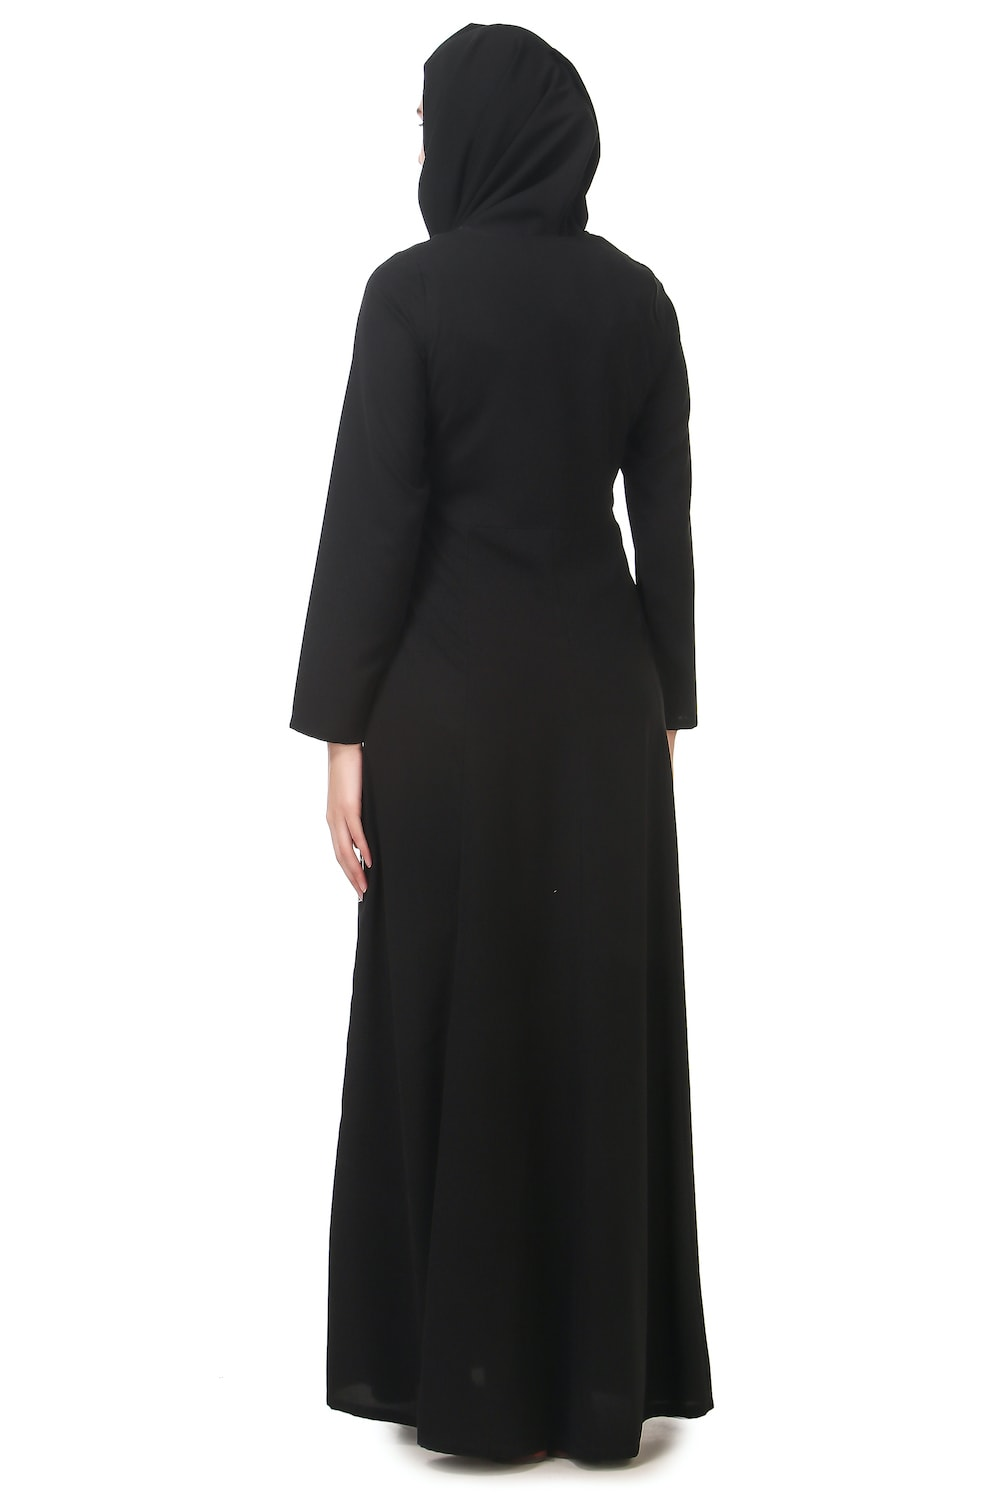 Contrast Embroidery Heavily Flared Abaya Back